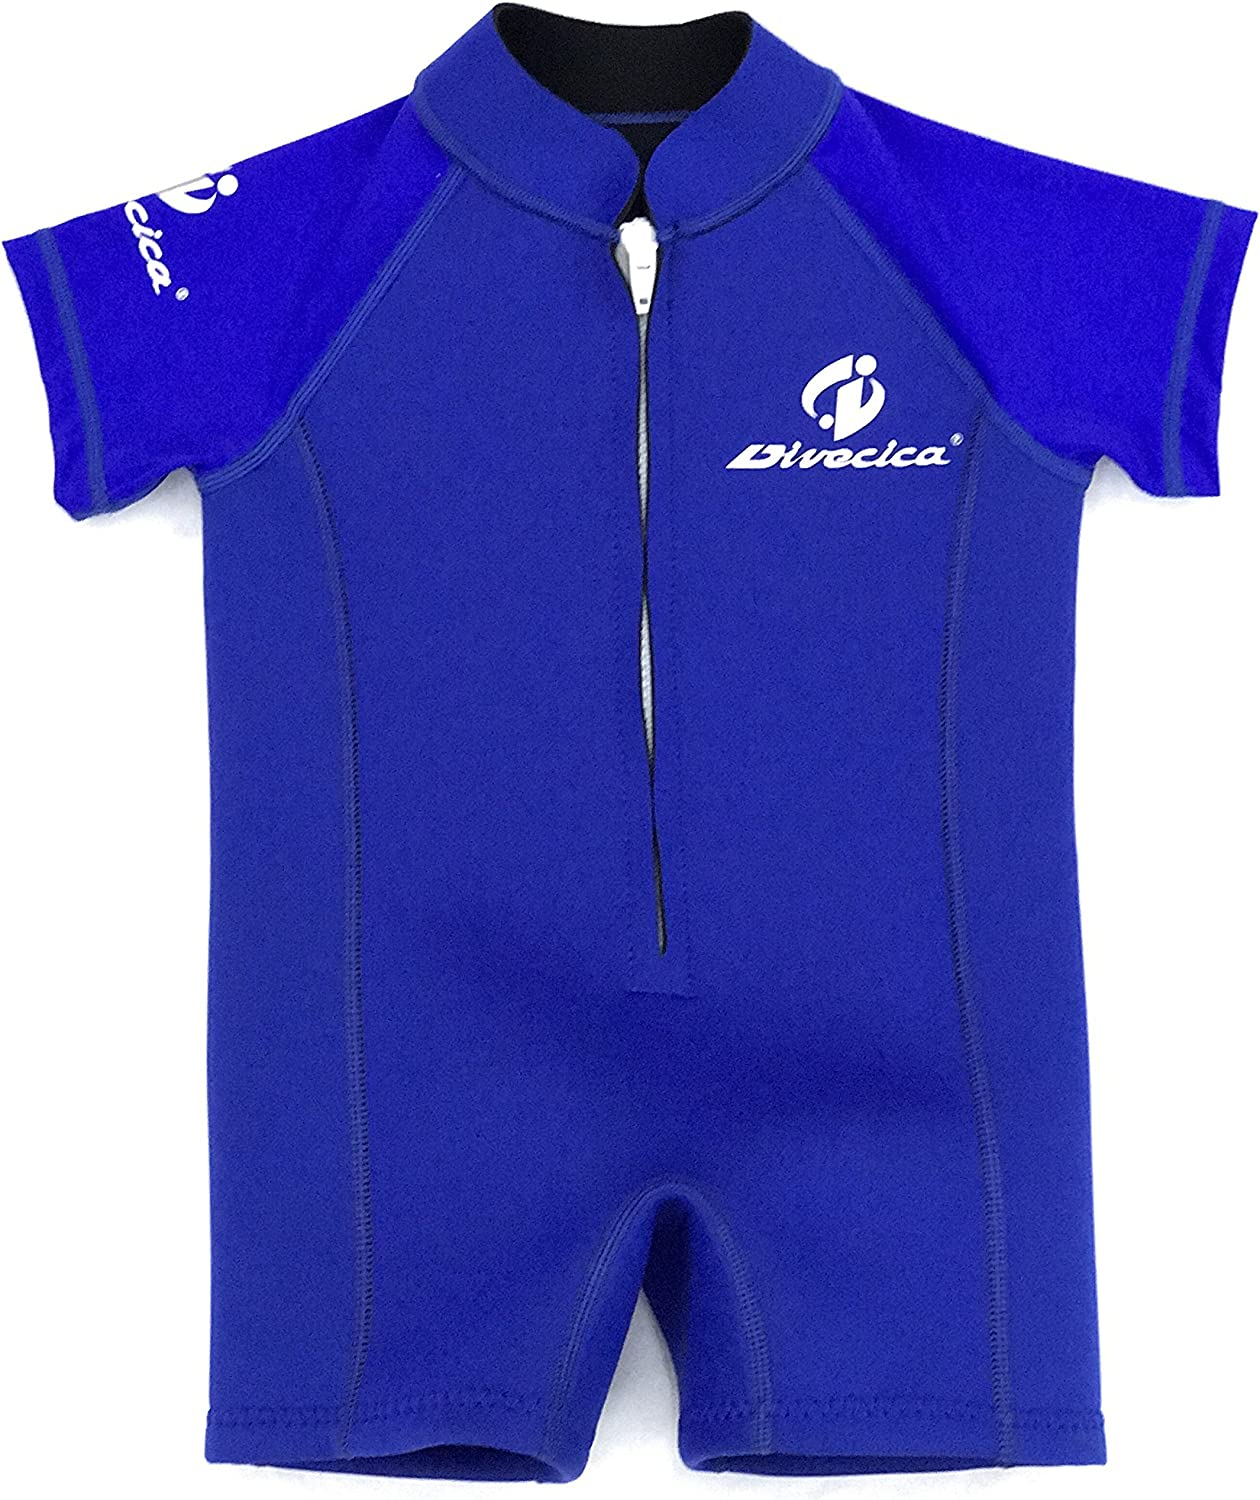 DIVECICA Baby Neoprene Rubber 2mm Clothes Blue Diving Bright Wet Max 59% OFF Free Shipping New